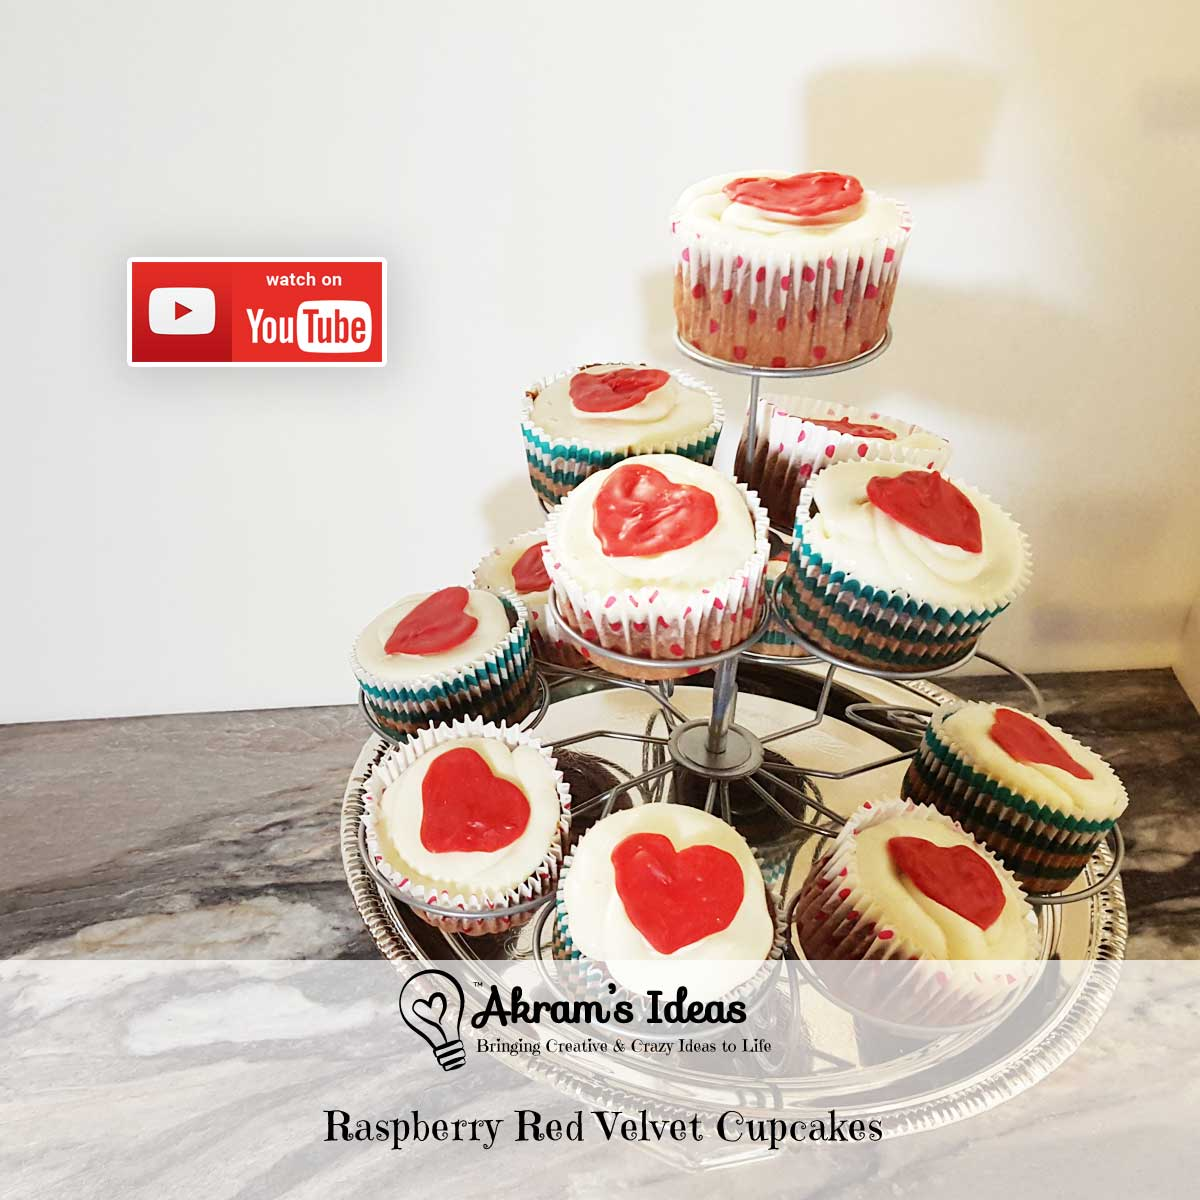 Akram's Ideas: Raspberry Red Velvet Cupcakes